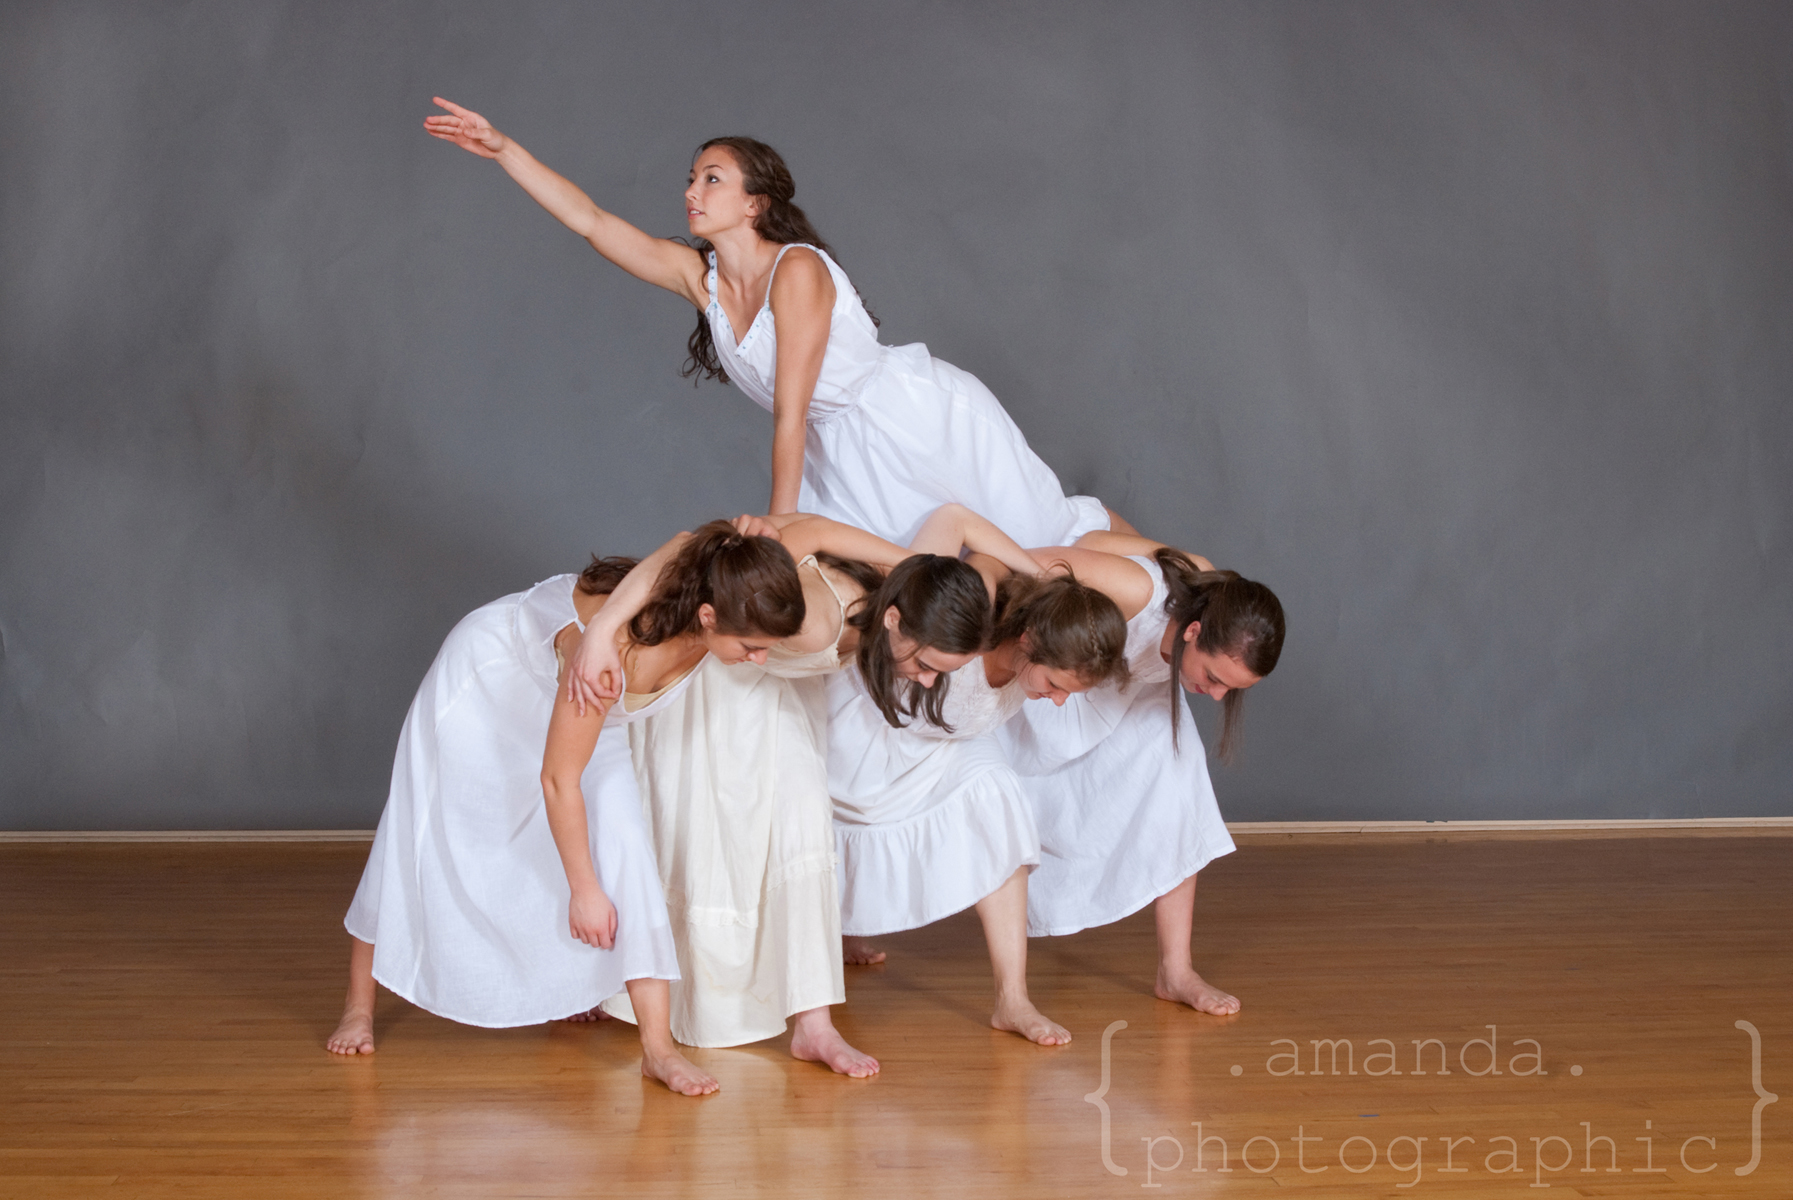 ballet and modern dance A brief historical account and description of the lineage and legacy of modern dance and its pioneers and the generations that have followed, as well as links for further reading.